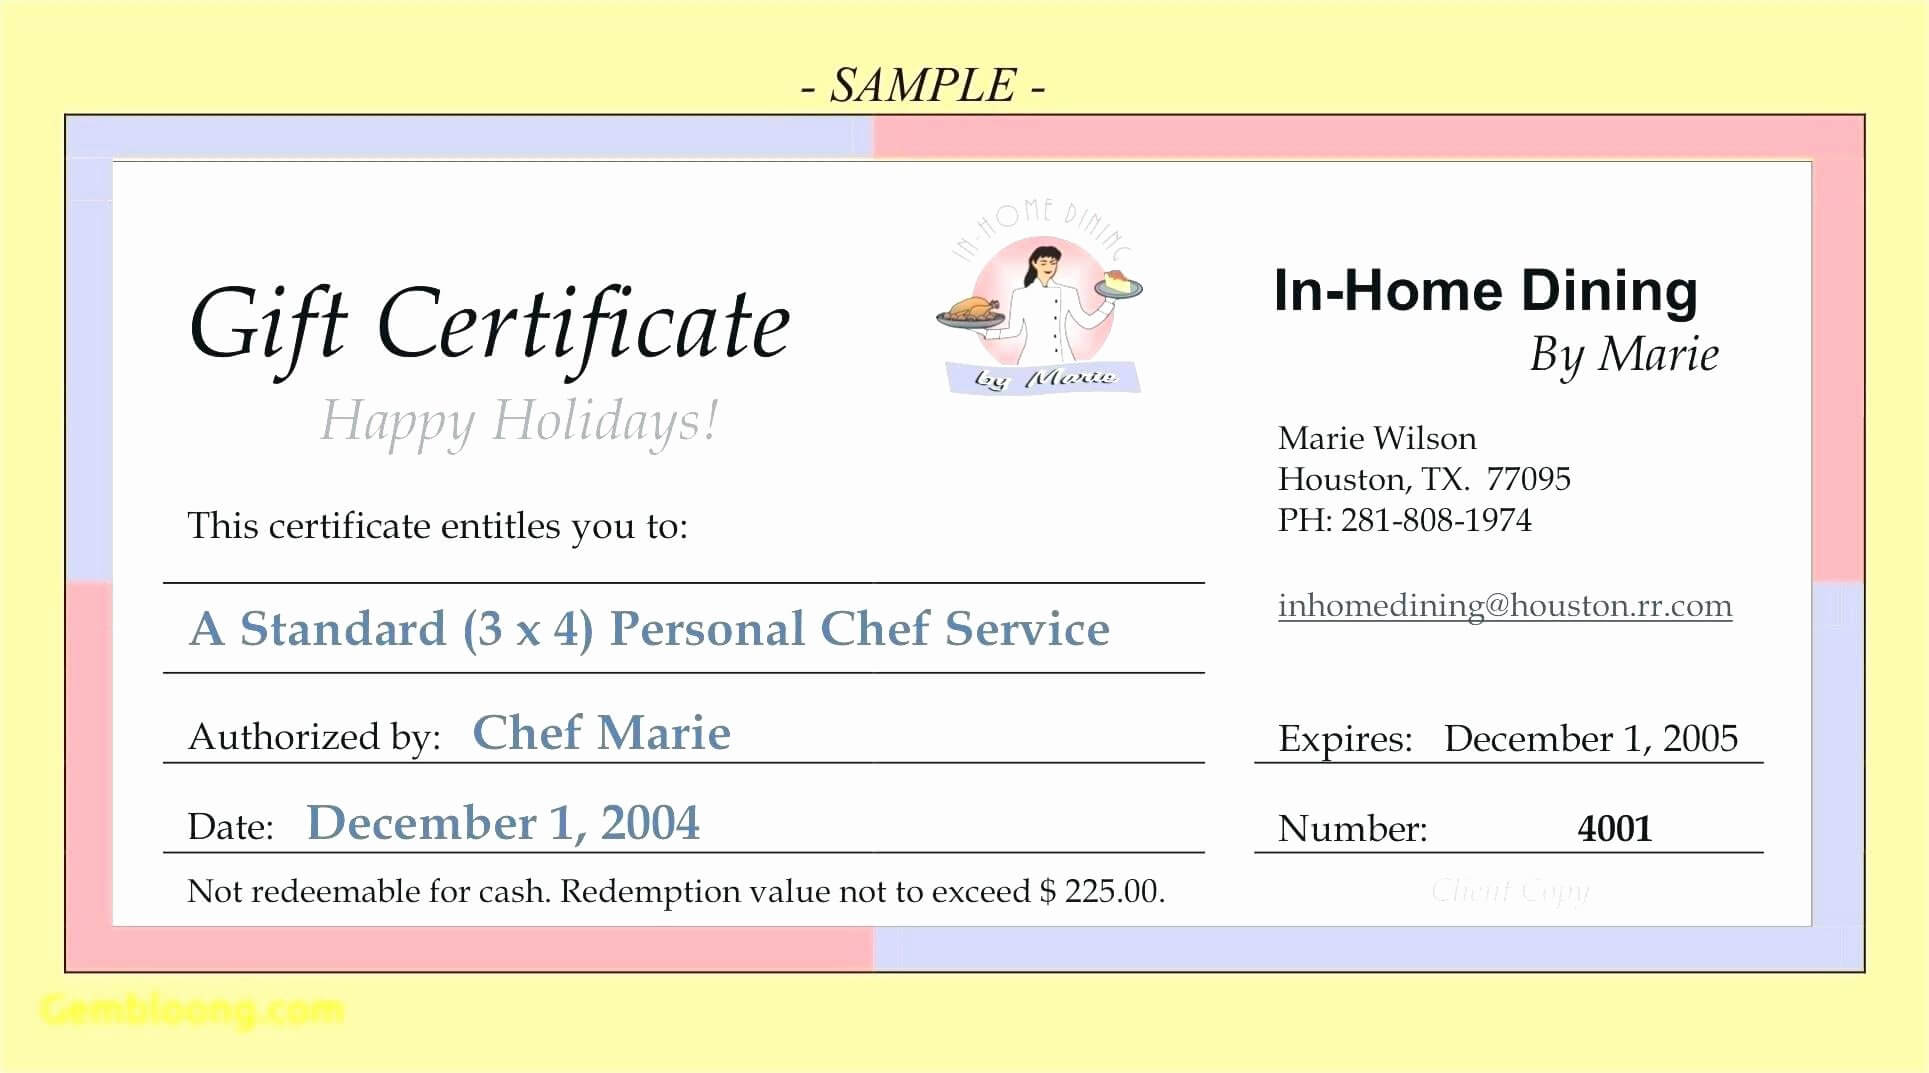 30 The Bearer Of This Certificate Is Entitled To Template in This Certificate Entitles The Bearer To Template